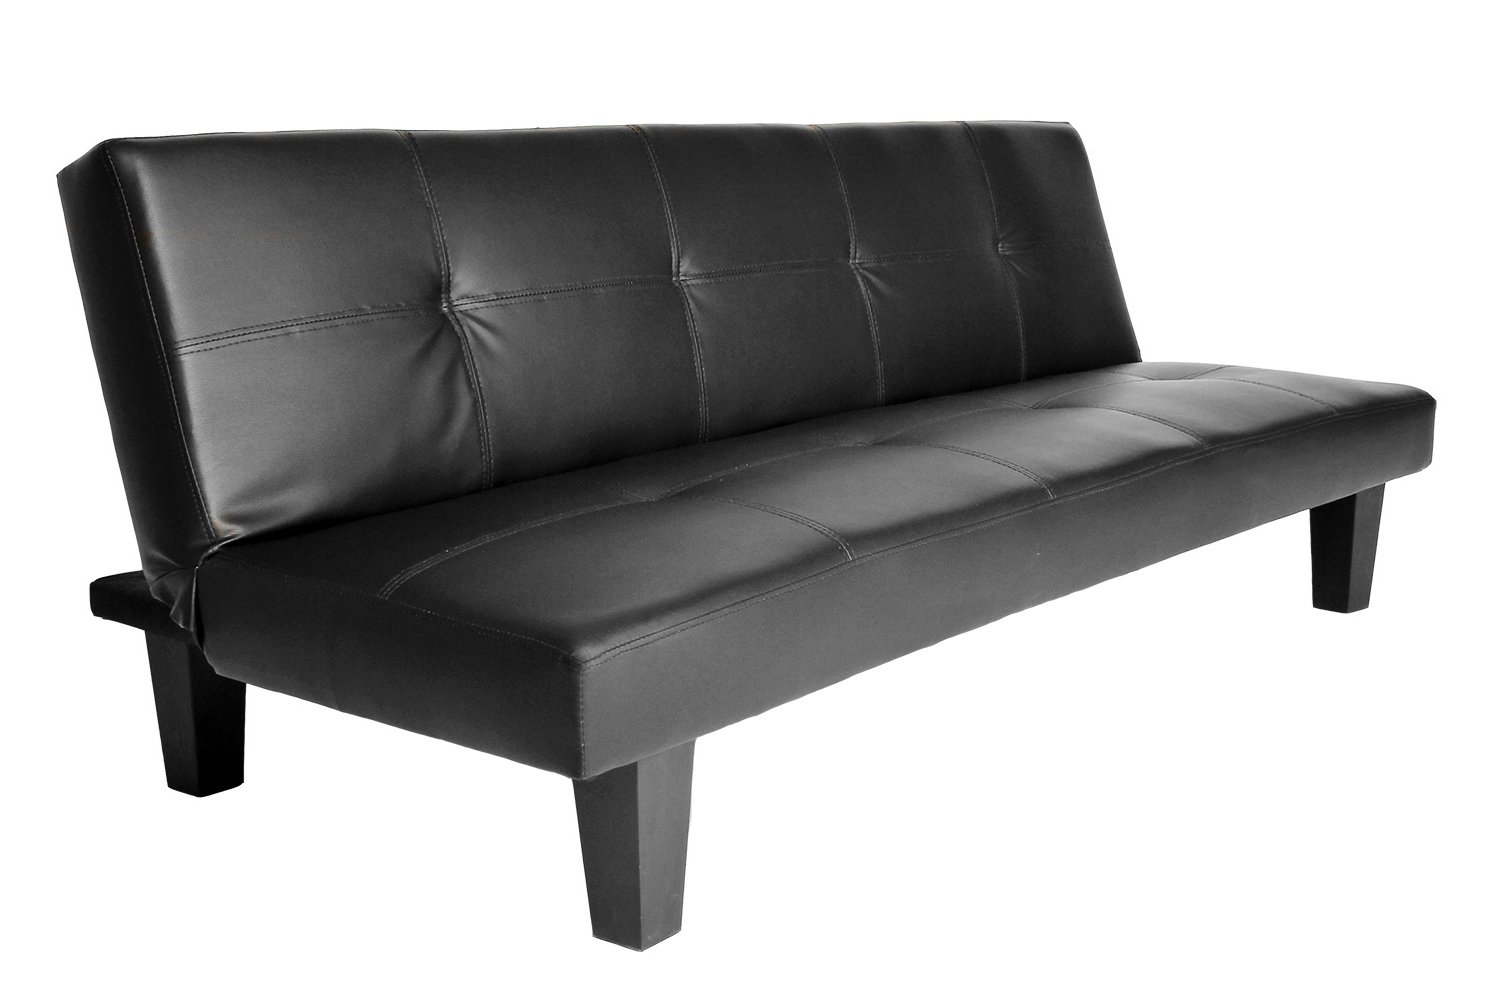 Click Clack Sofa Bed Black Faux Leather 2 3 Seater Modern Settee